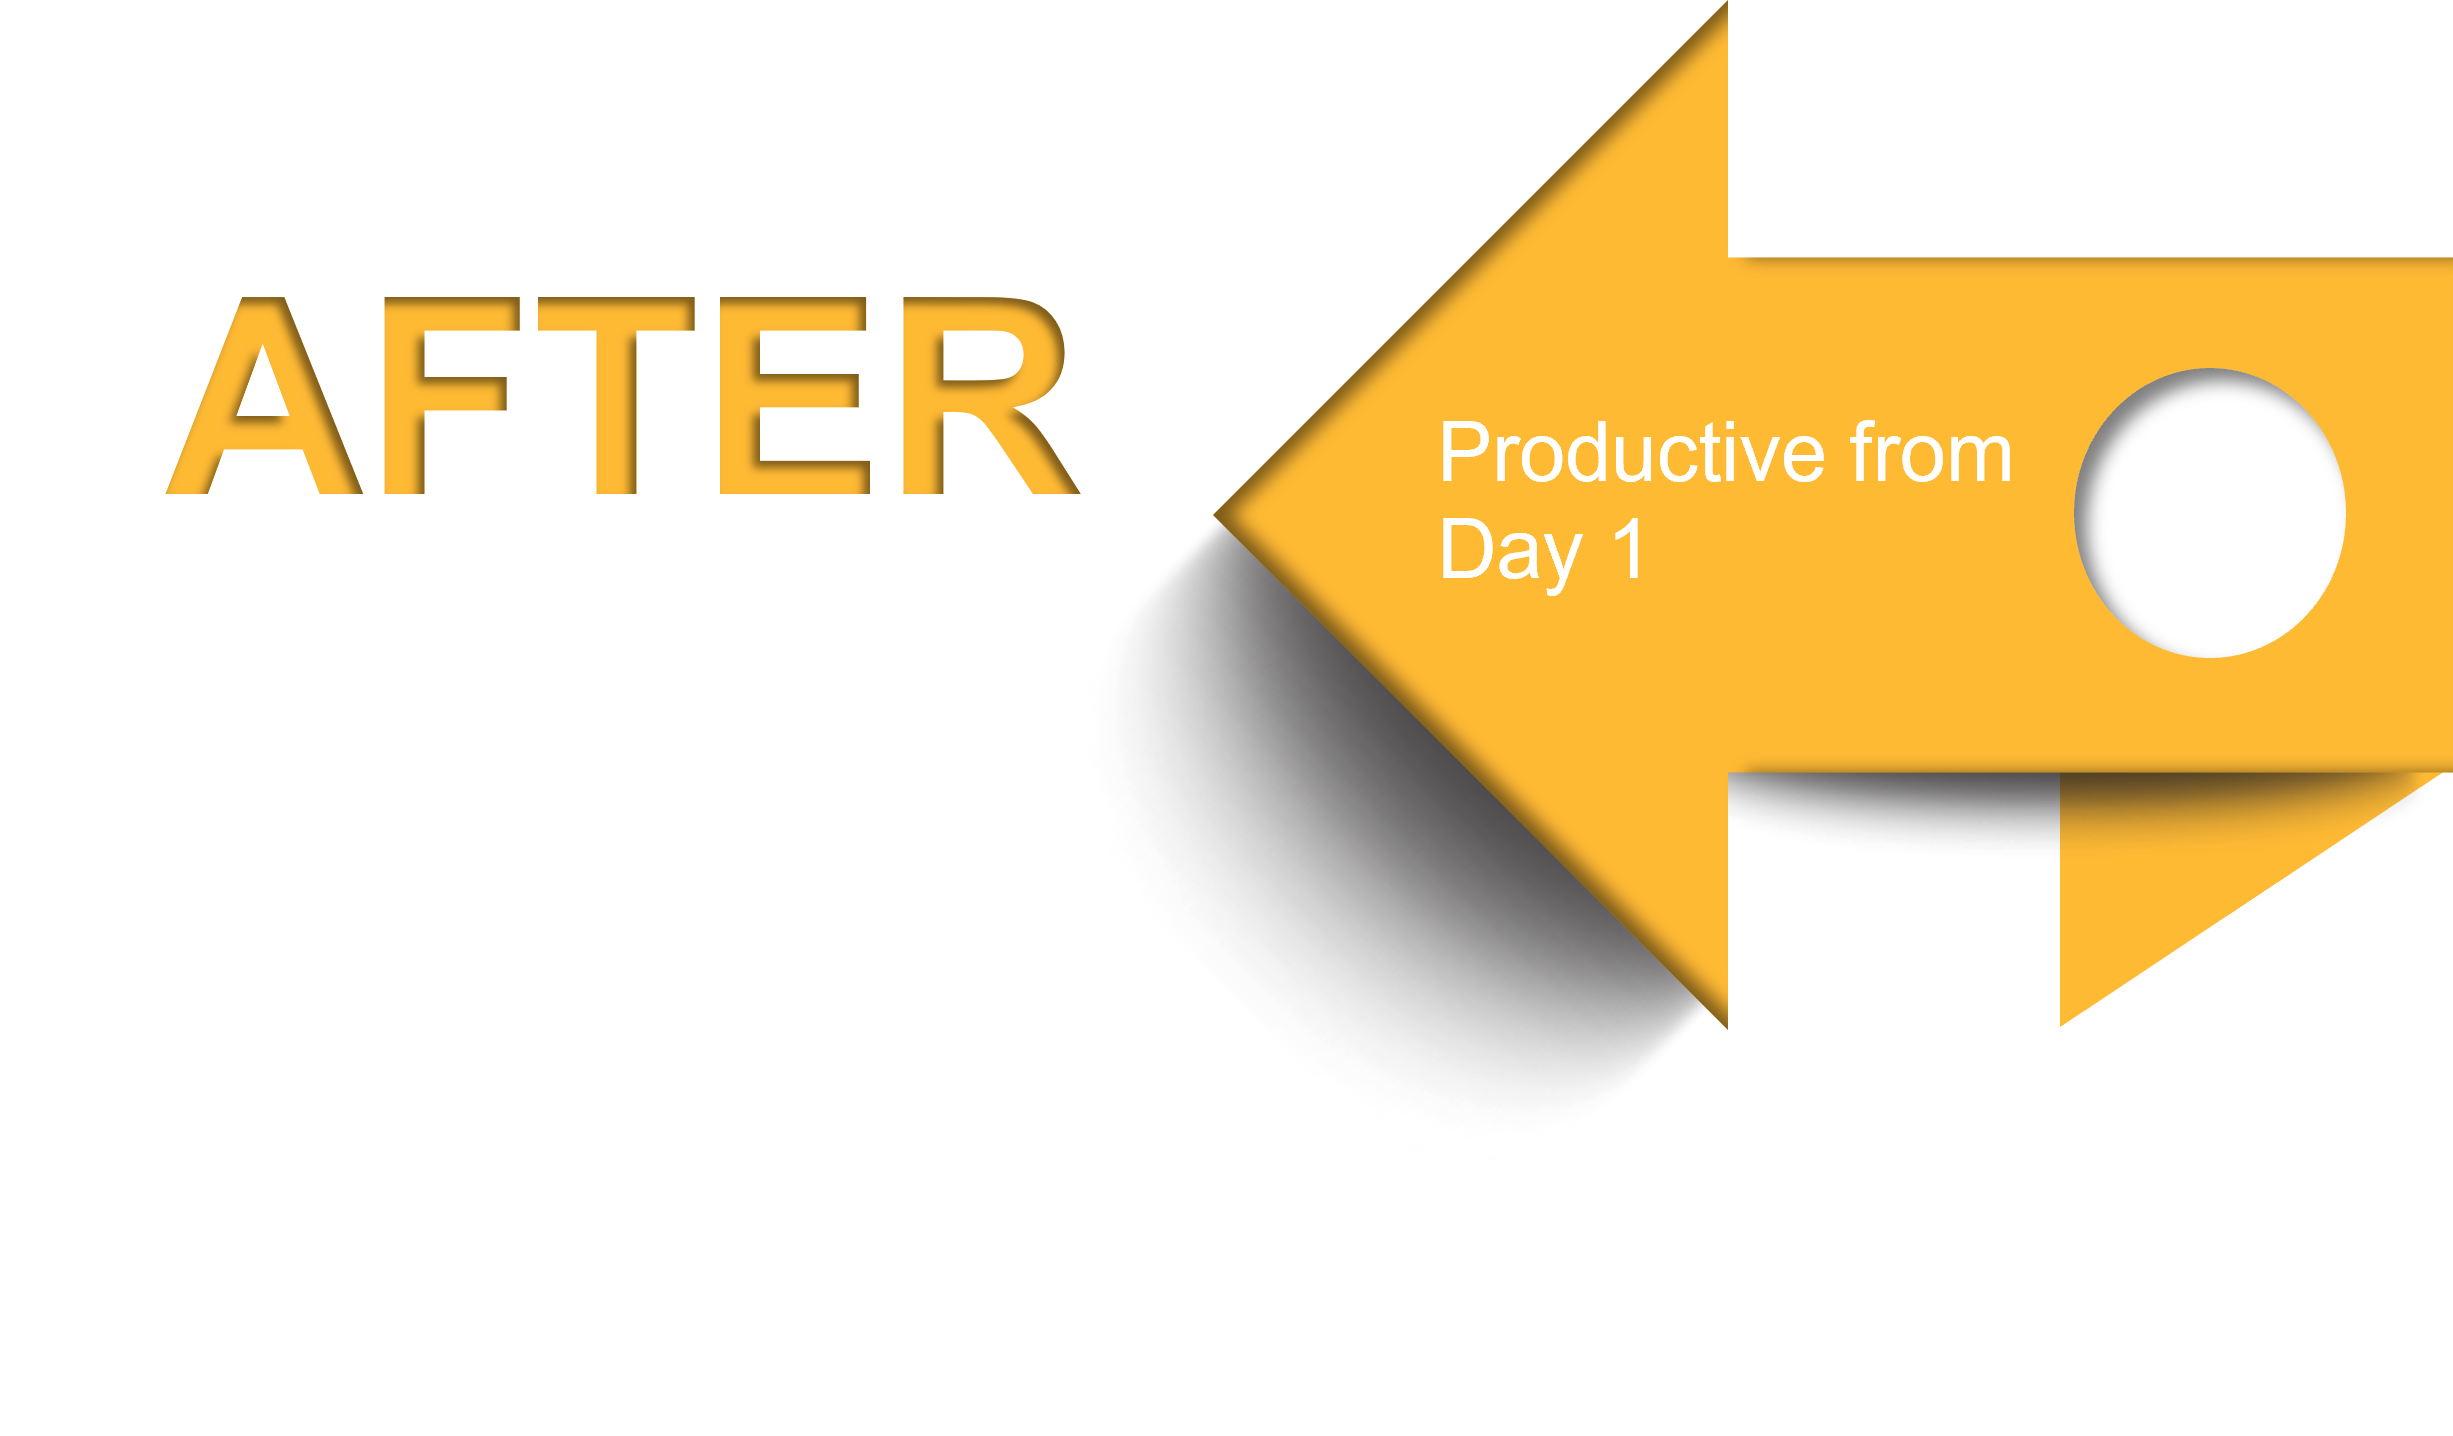 After-productive